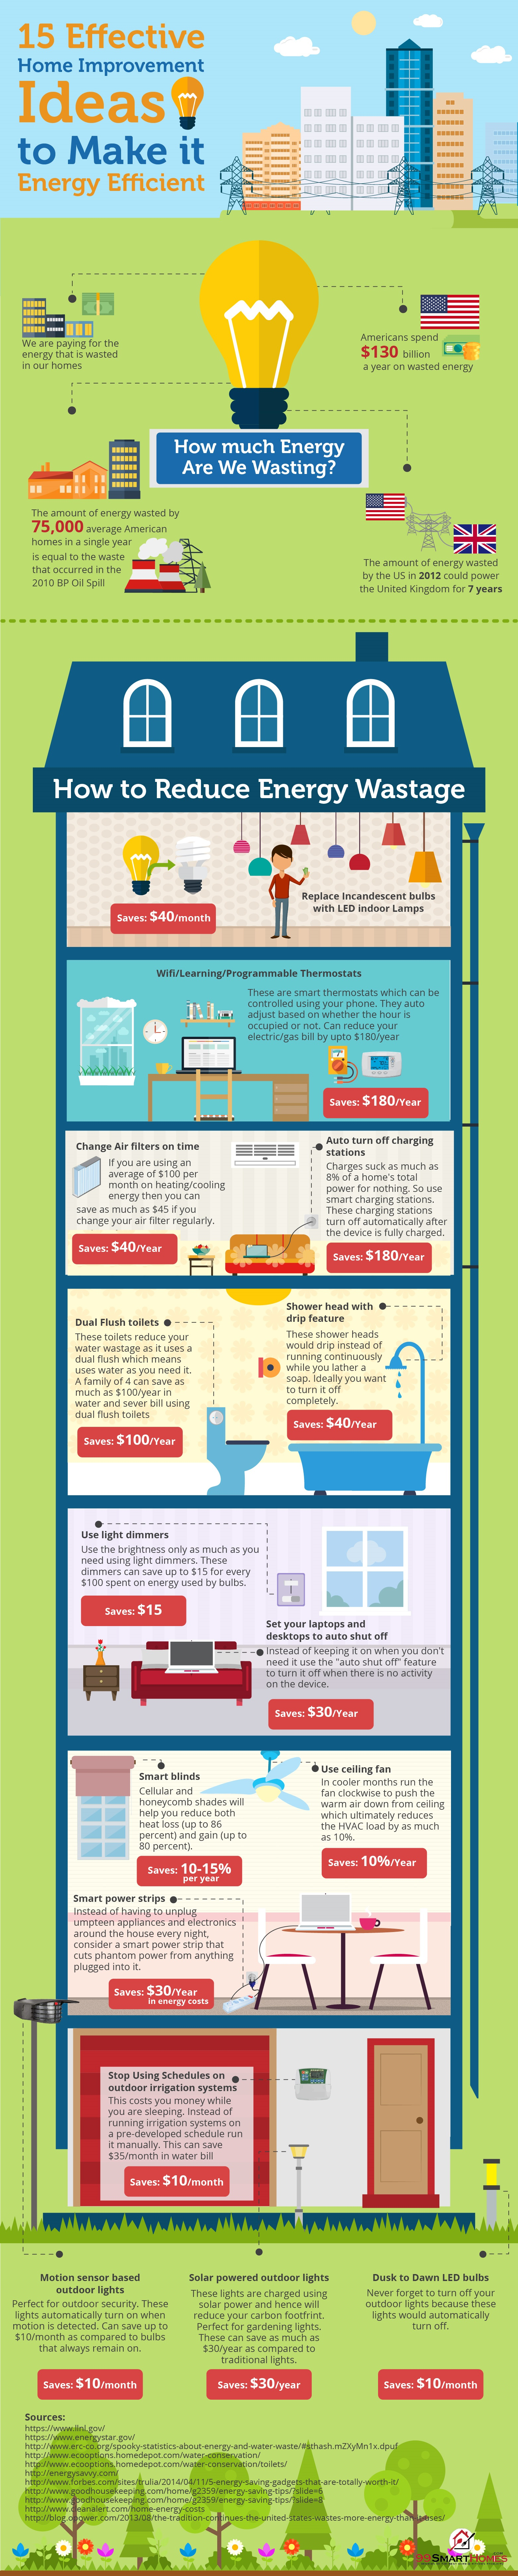 15 Effective Ways to Make Your Home Energy Efficient Infographic